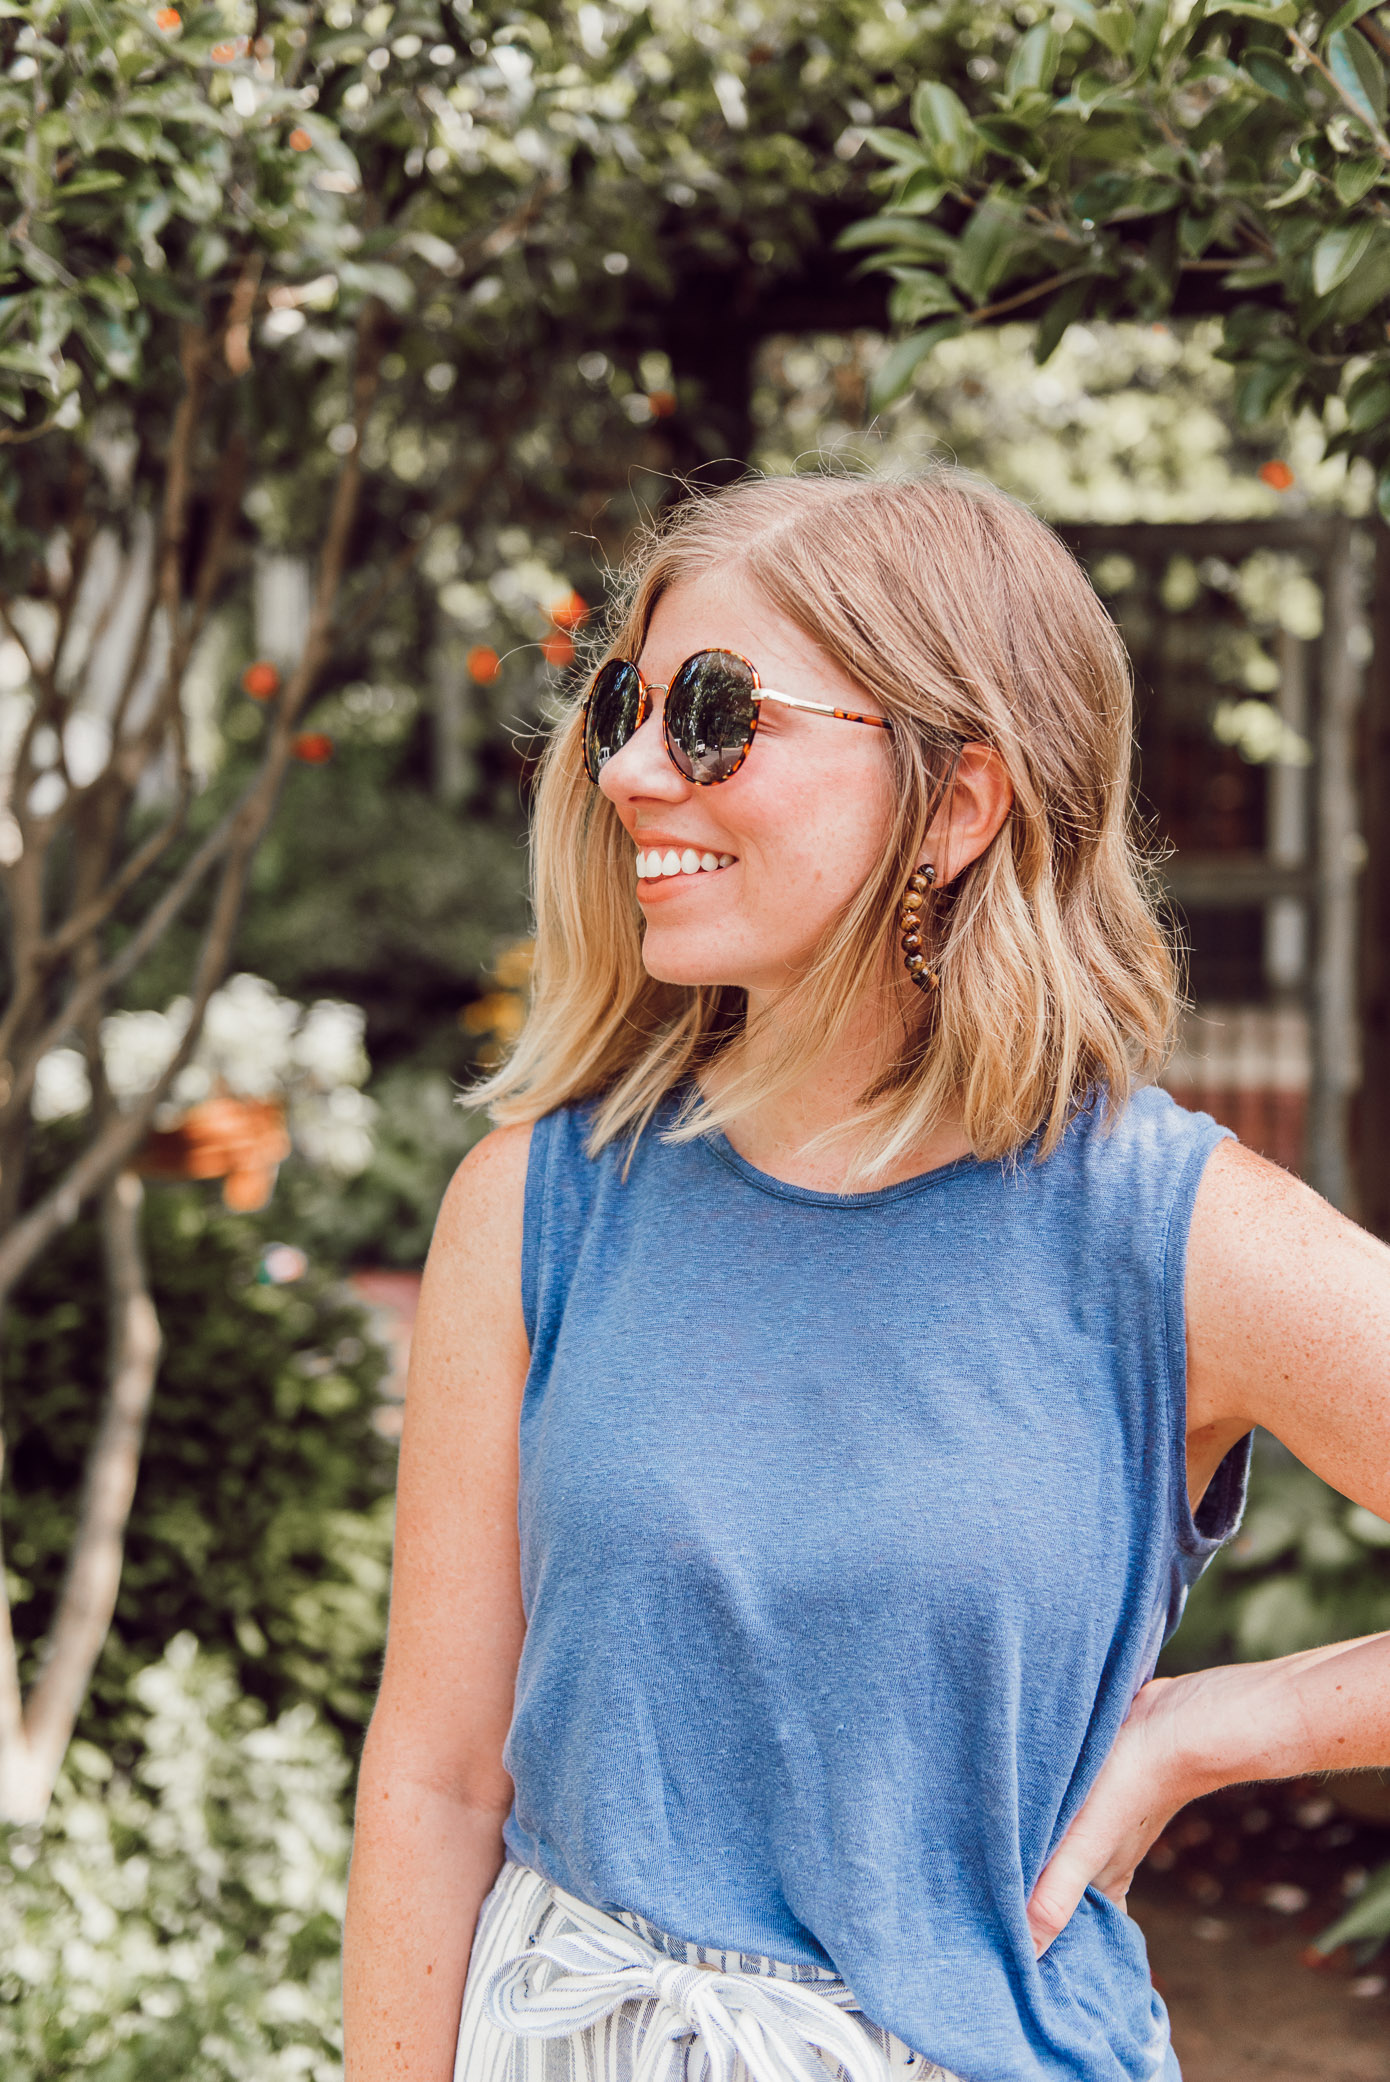 Ray-Ban Icons Retro Sunglasses Dupes | Round Framed Sunglasses under $20 | Louella Reese